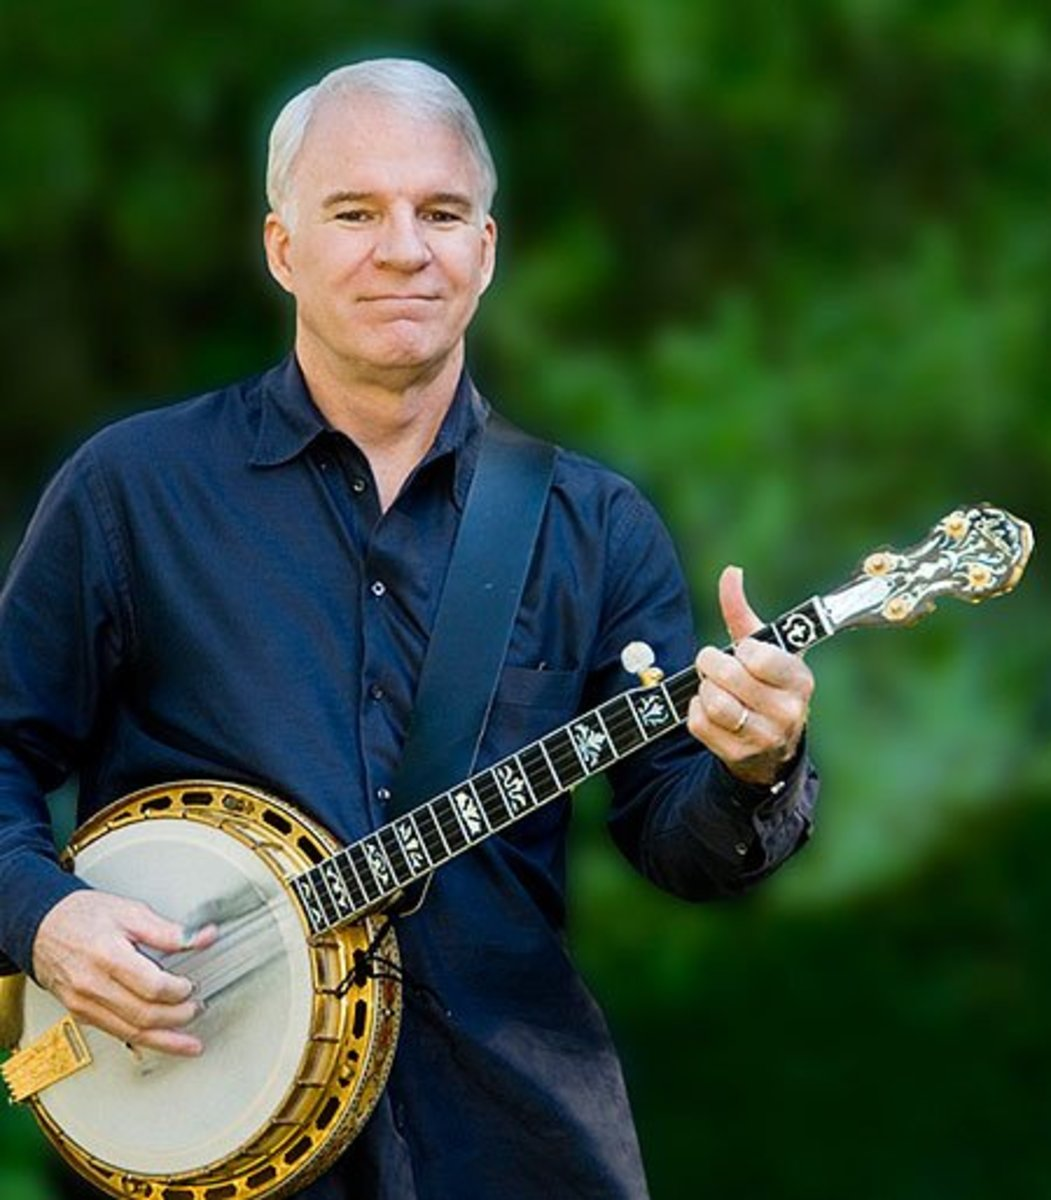 Steve Martin, once ranked #6 stand-up comedian of all time, has transitioned into a jack-of-all trades career which includes a heavy emphasis on his banjo-playing, which earned him a Grammy in 2010 for Best Bluegrass Album.